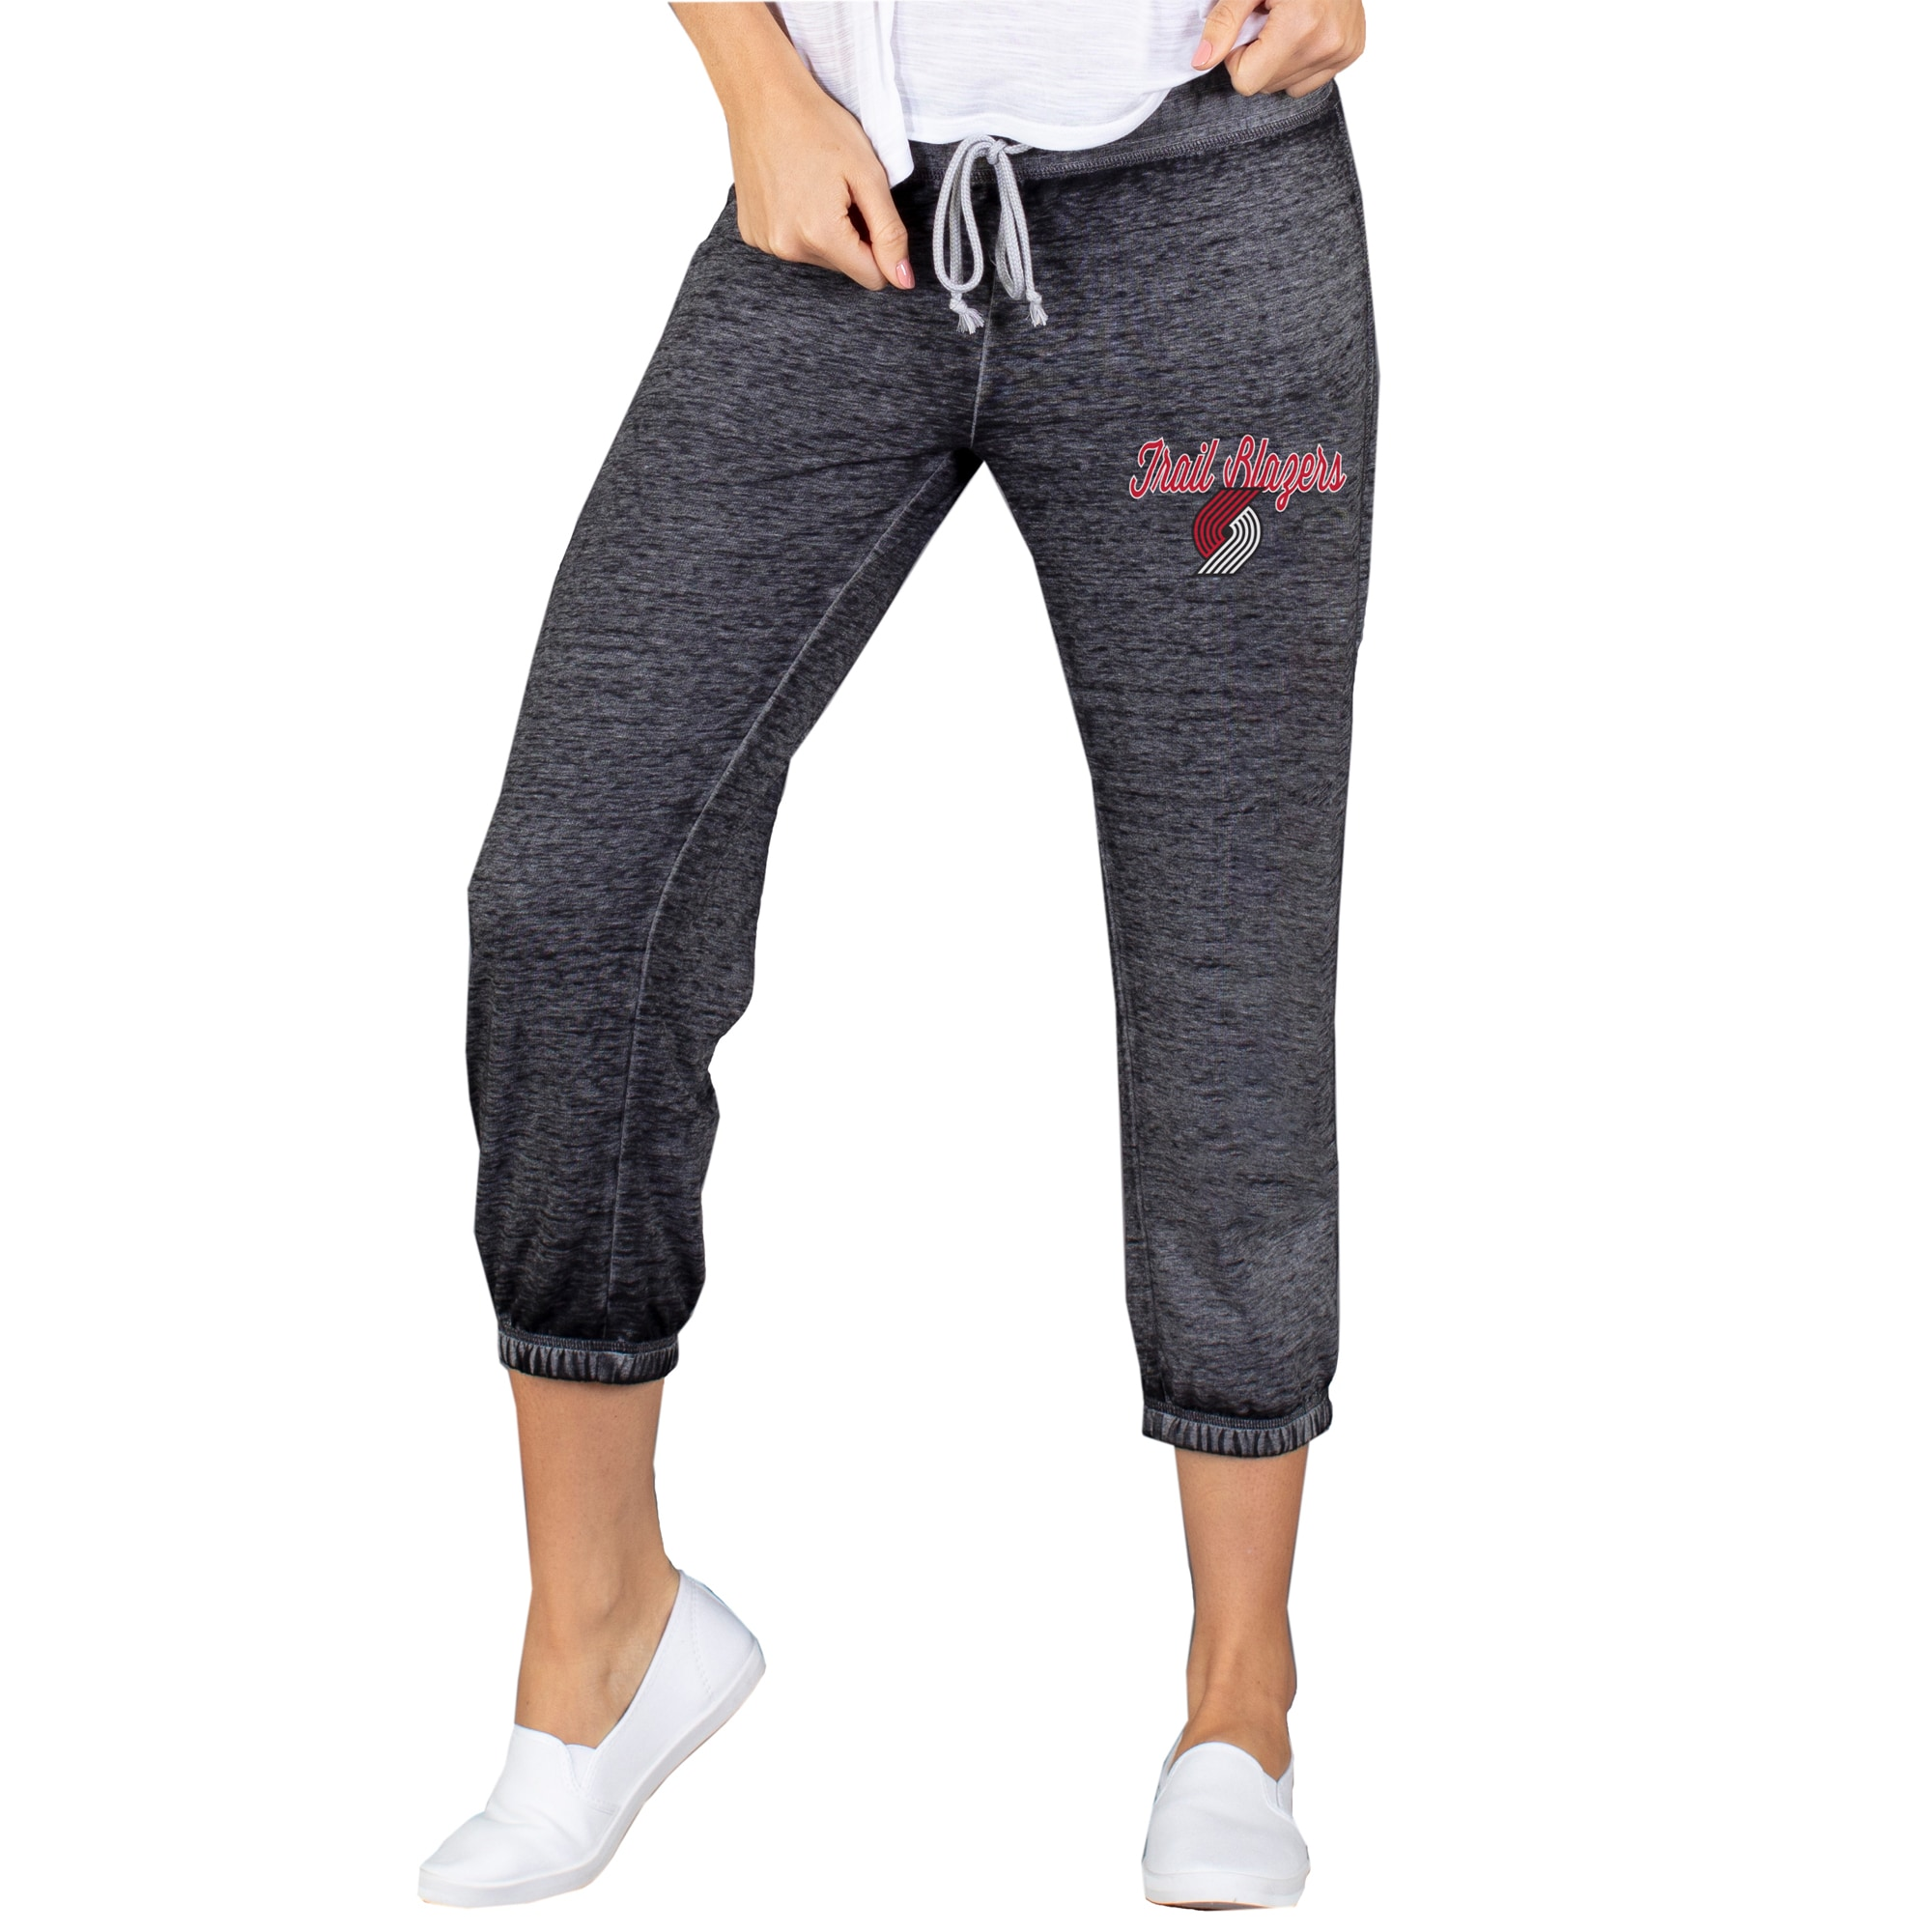 Portland Trail Blazers Concepts Sport Women's Capri Knit Lounge Pants - Charcoal